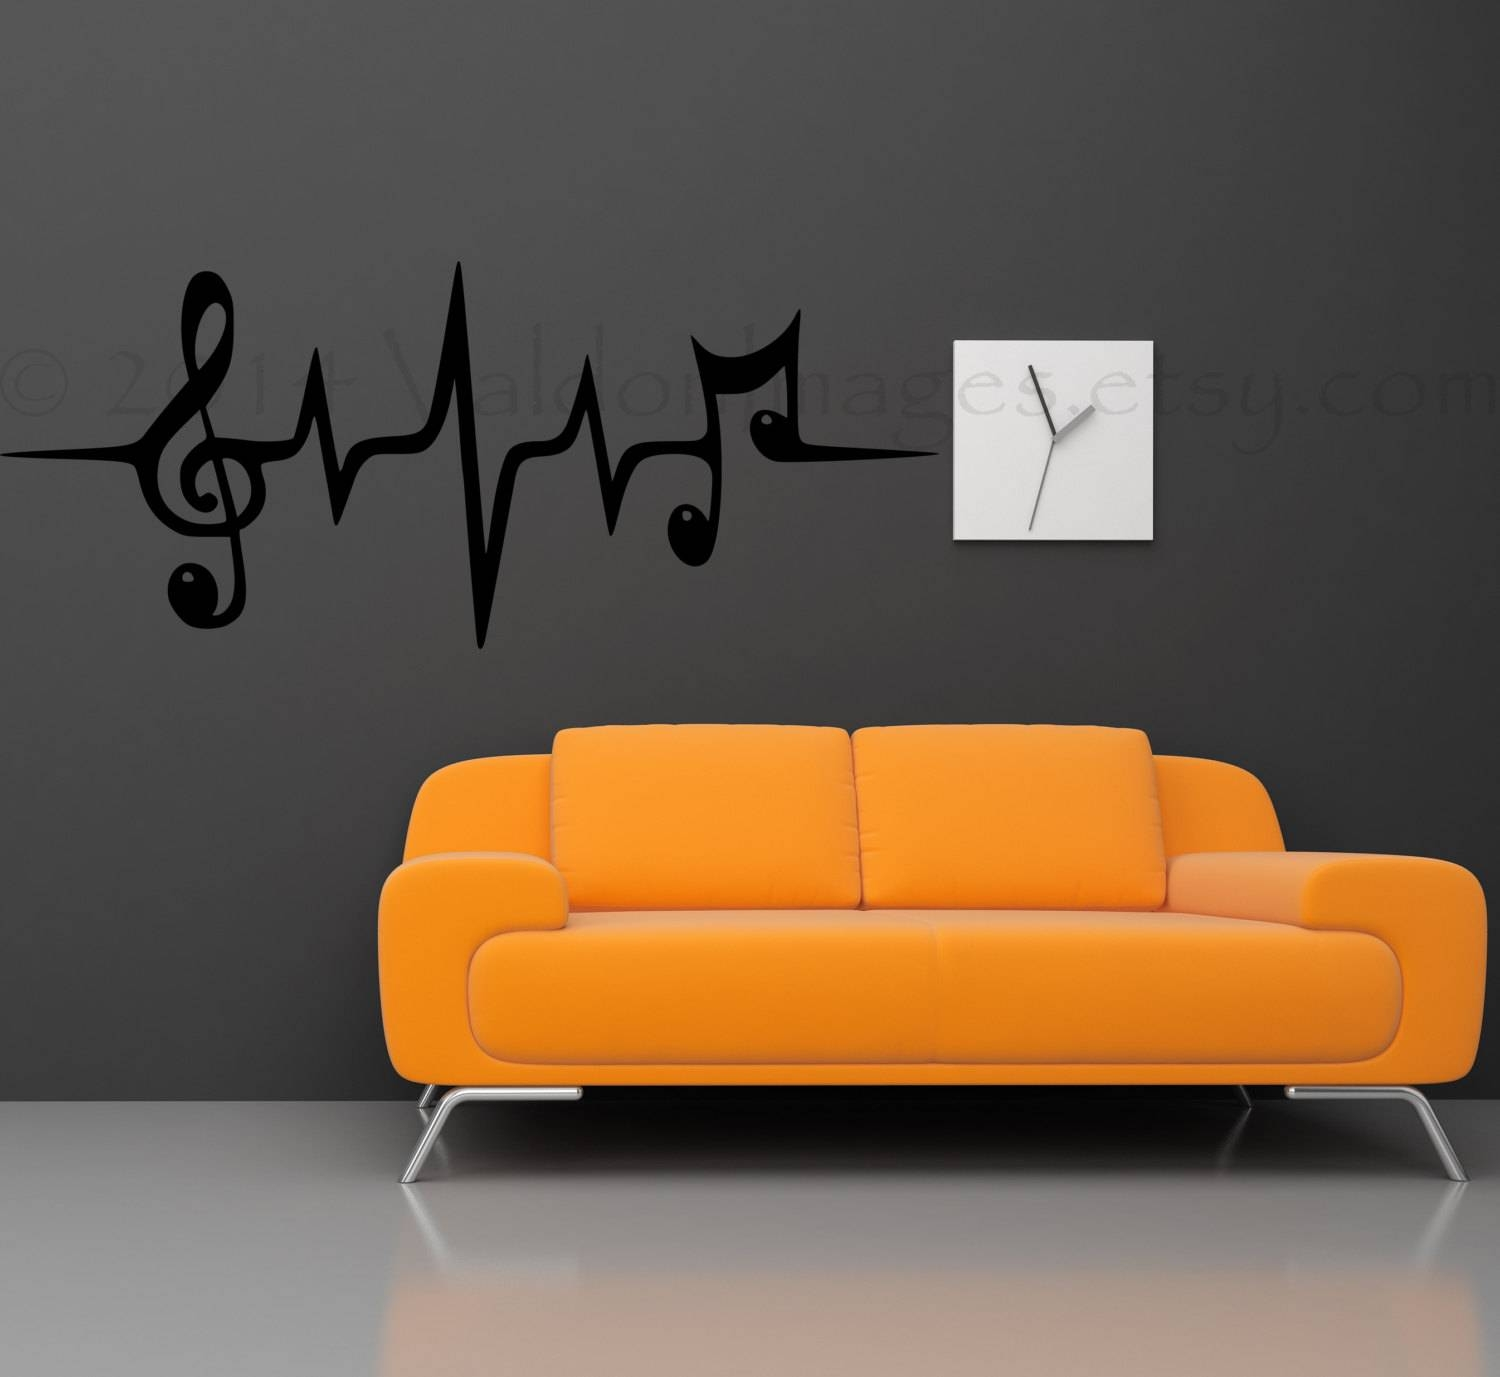 Music Note Wall Decal Music Wall Decal Heartbeat Wall Inside Most Up To Date Music Note Wall Art (View 3 of 20)